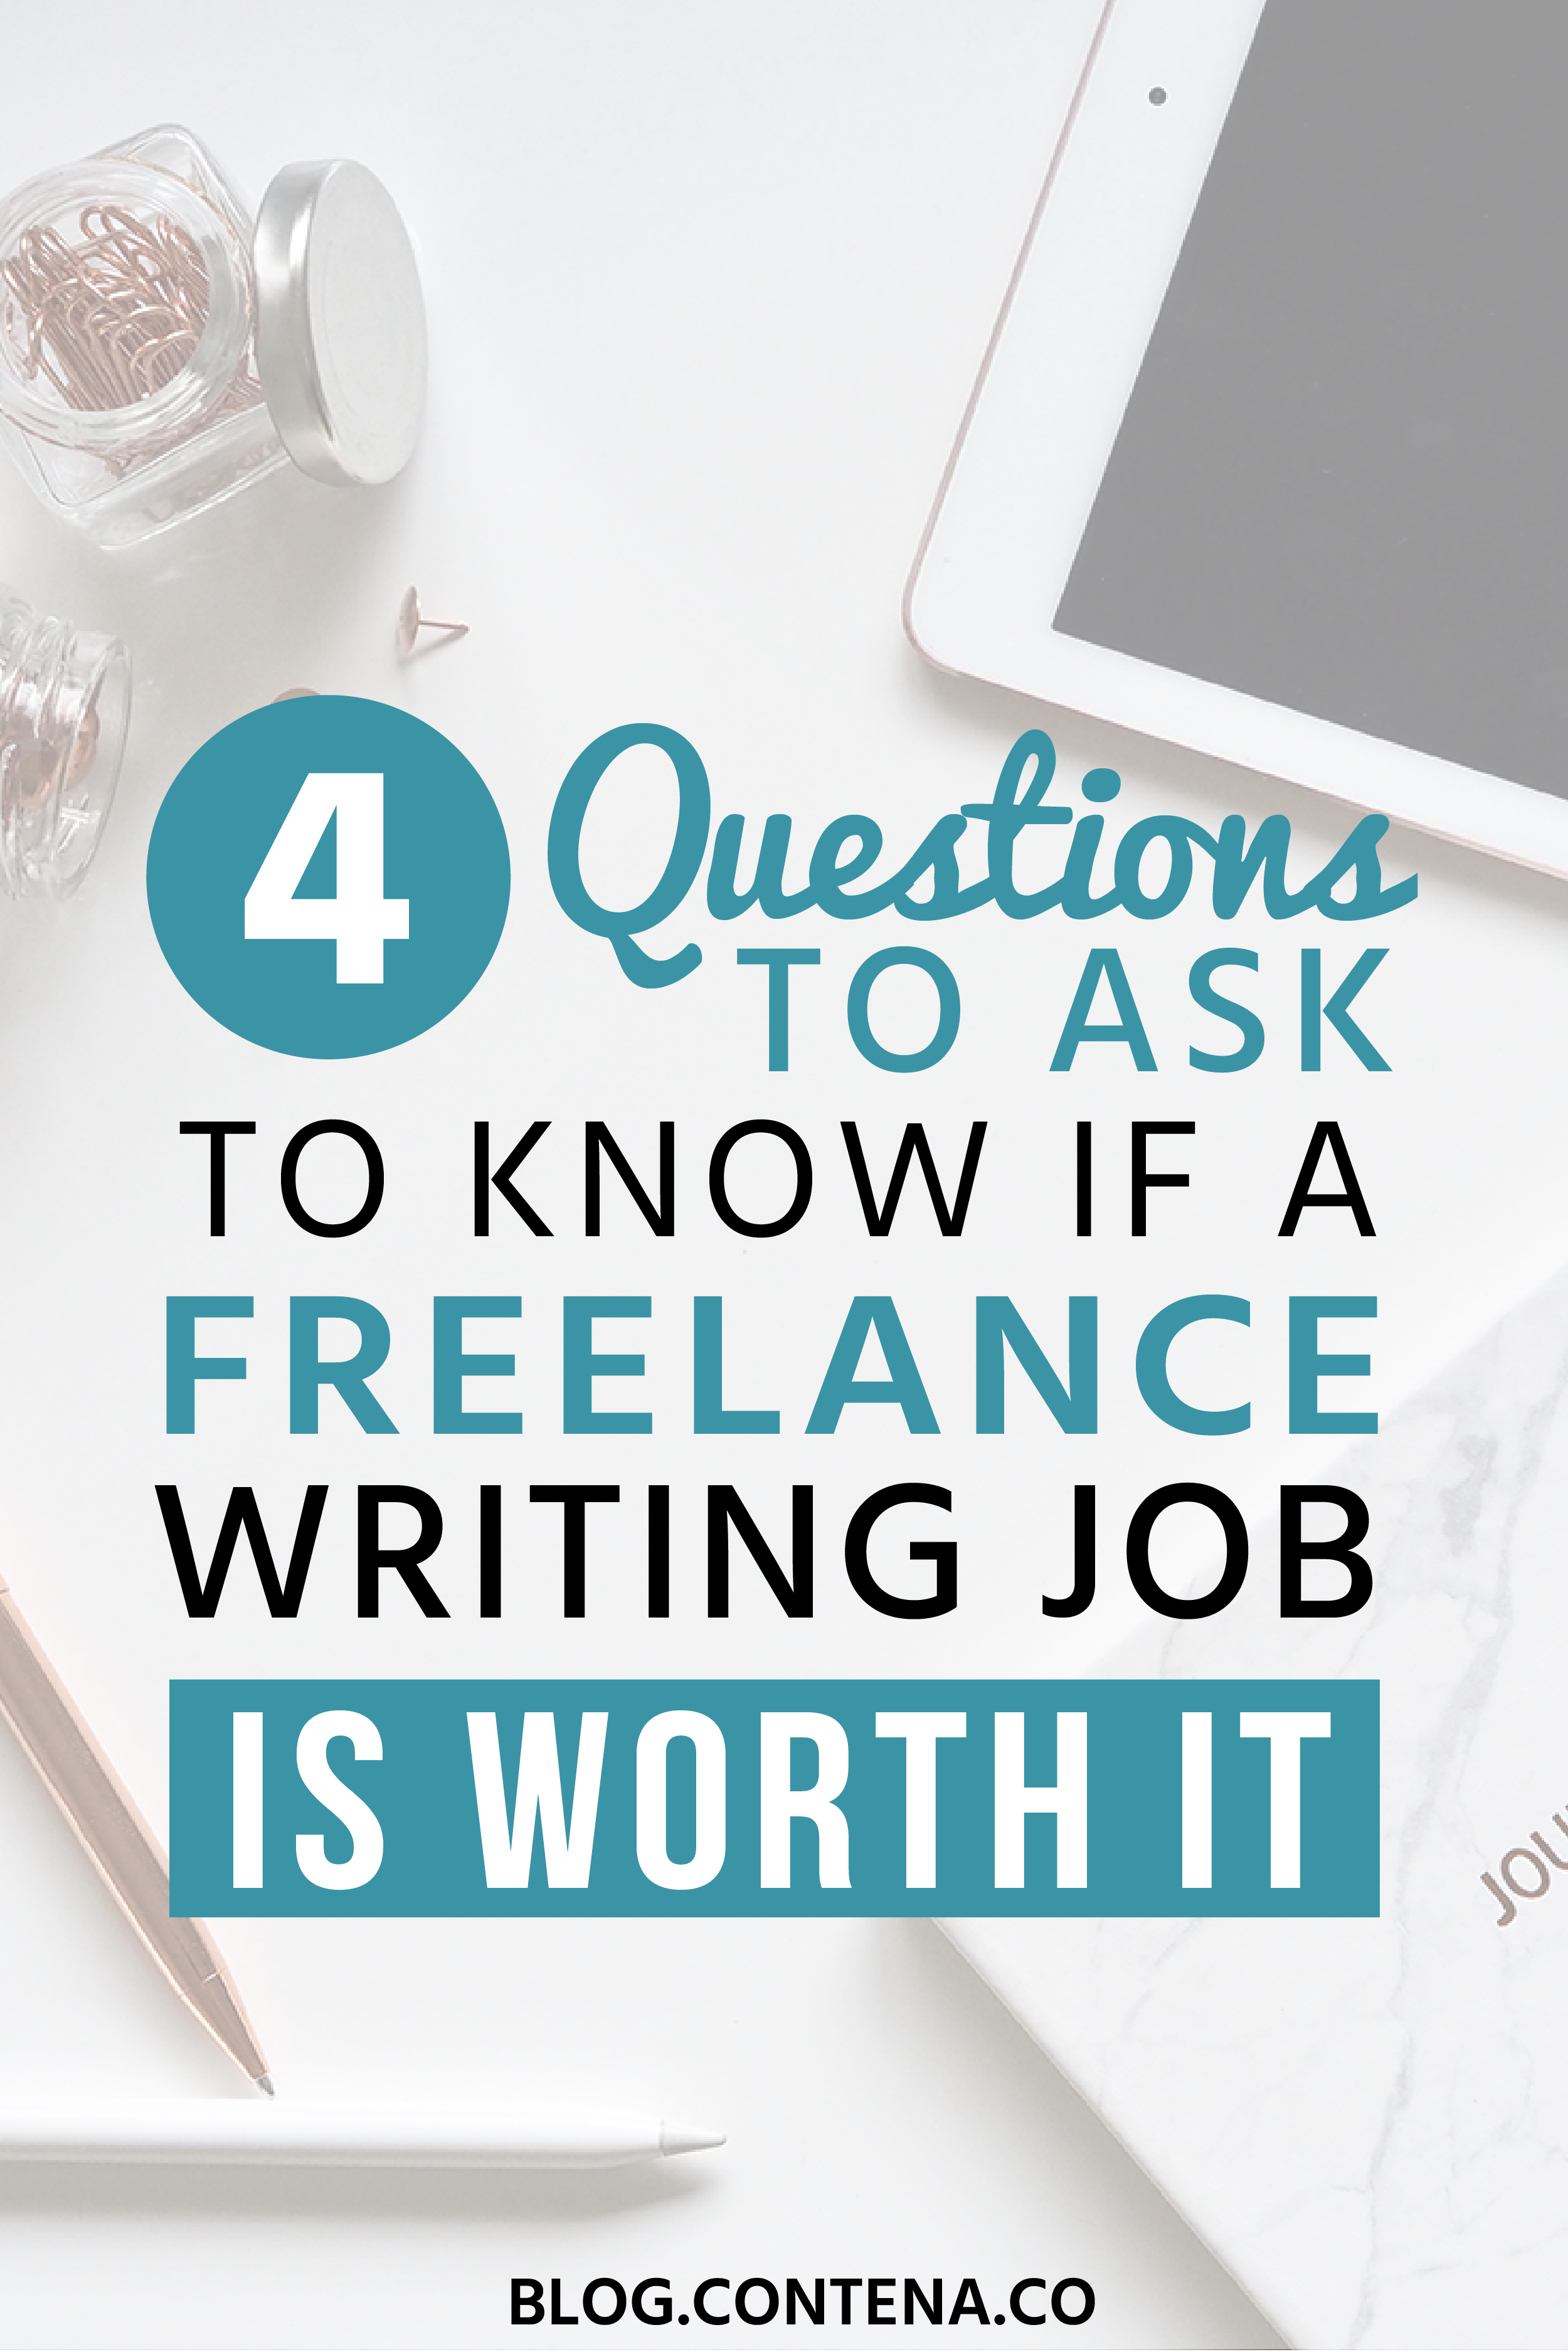 If you're a beginner freelance writer, or even a pro, before you take a freelance writing job, you want to know if it's legit. Is the money worth it? Is the job legit? Here are 4 questions to ask yourself before you take a freelance writing job. #FreelanceWriting #Freelancer #WorkFromHome #SideHustle #Money #OnlineBusiness #Writing #WritingJobs #Money